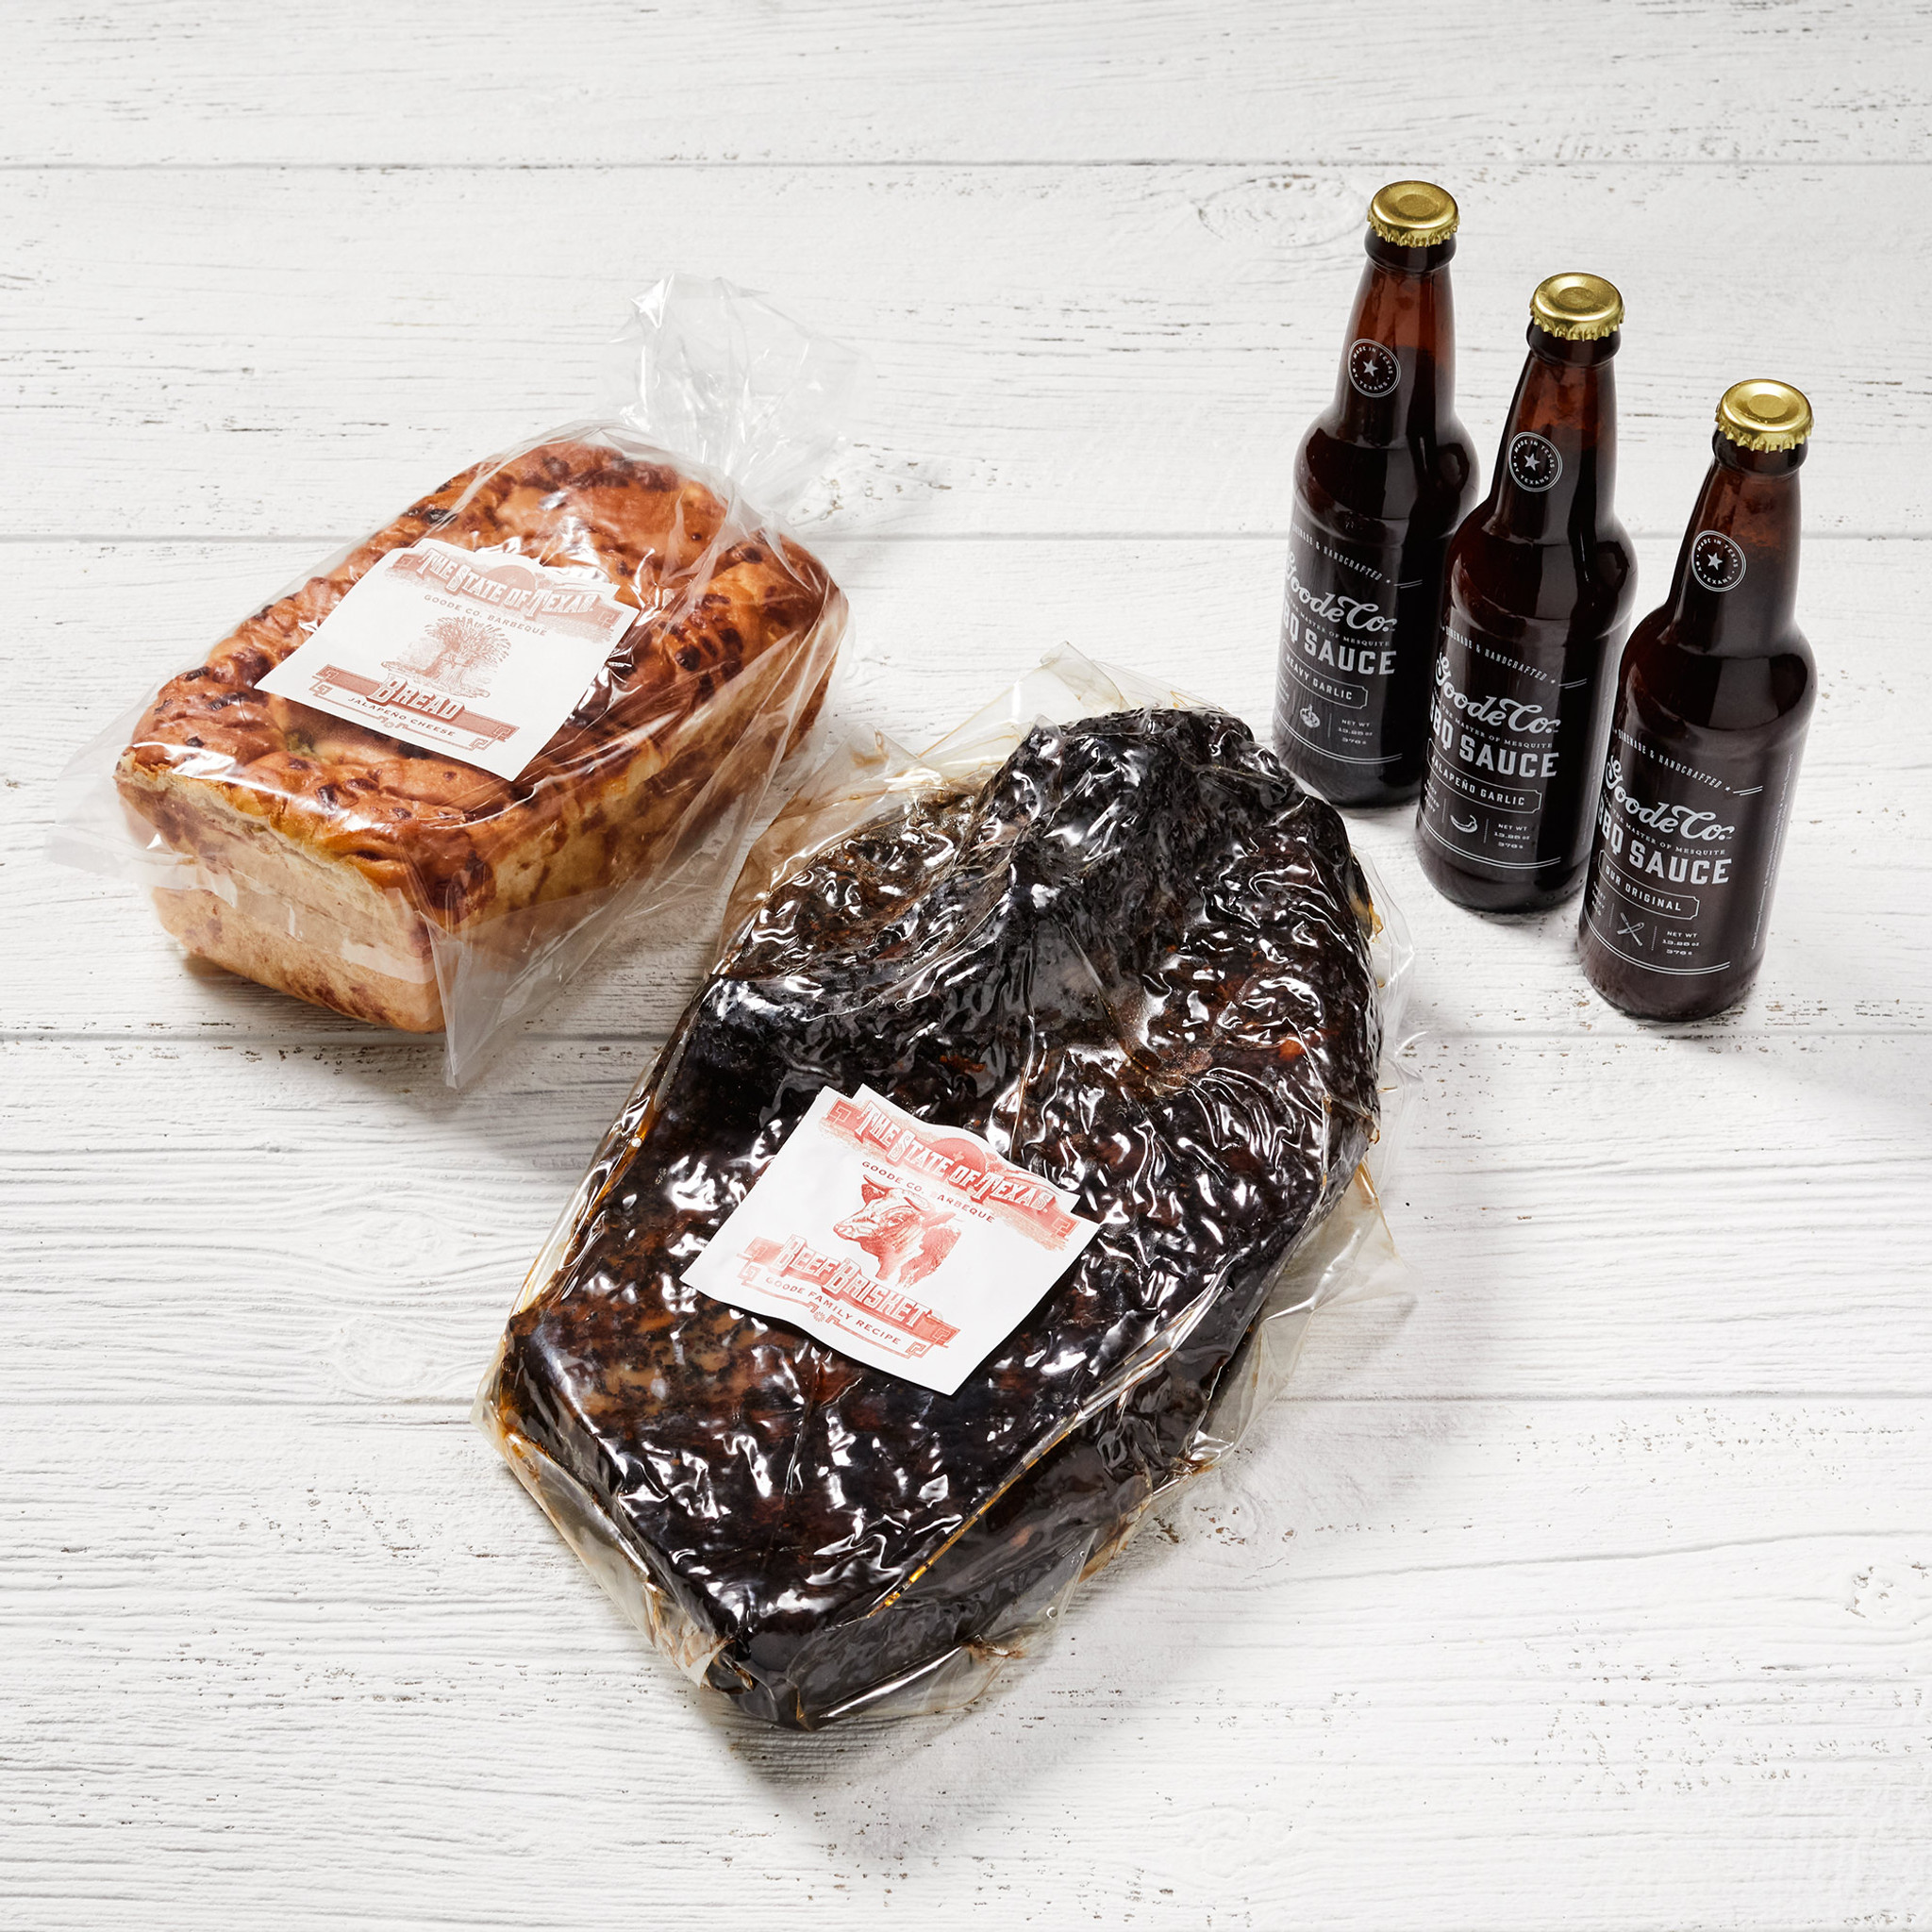 Shipping packaging for Goode Co's Brisket & BBQ Sauce Sampler bundle, delivered in vacuum-sealed smoked brisket with 3 glass bottles of Goode's Original BBQ sauce, and 1 loaf of jalapeño cheese bread.